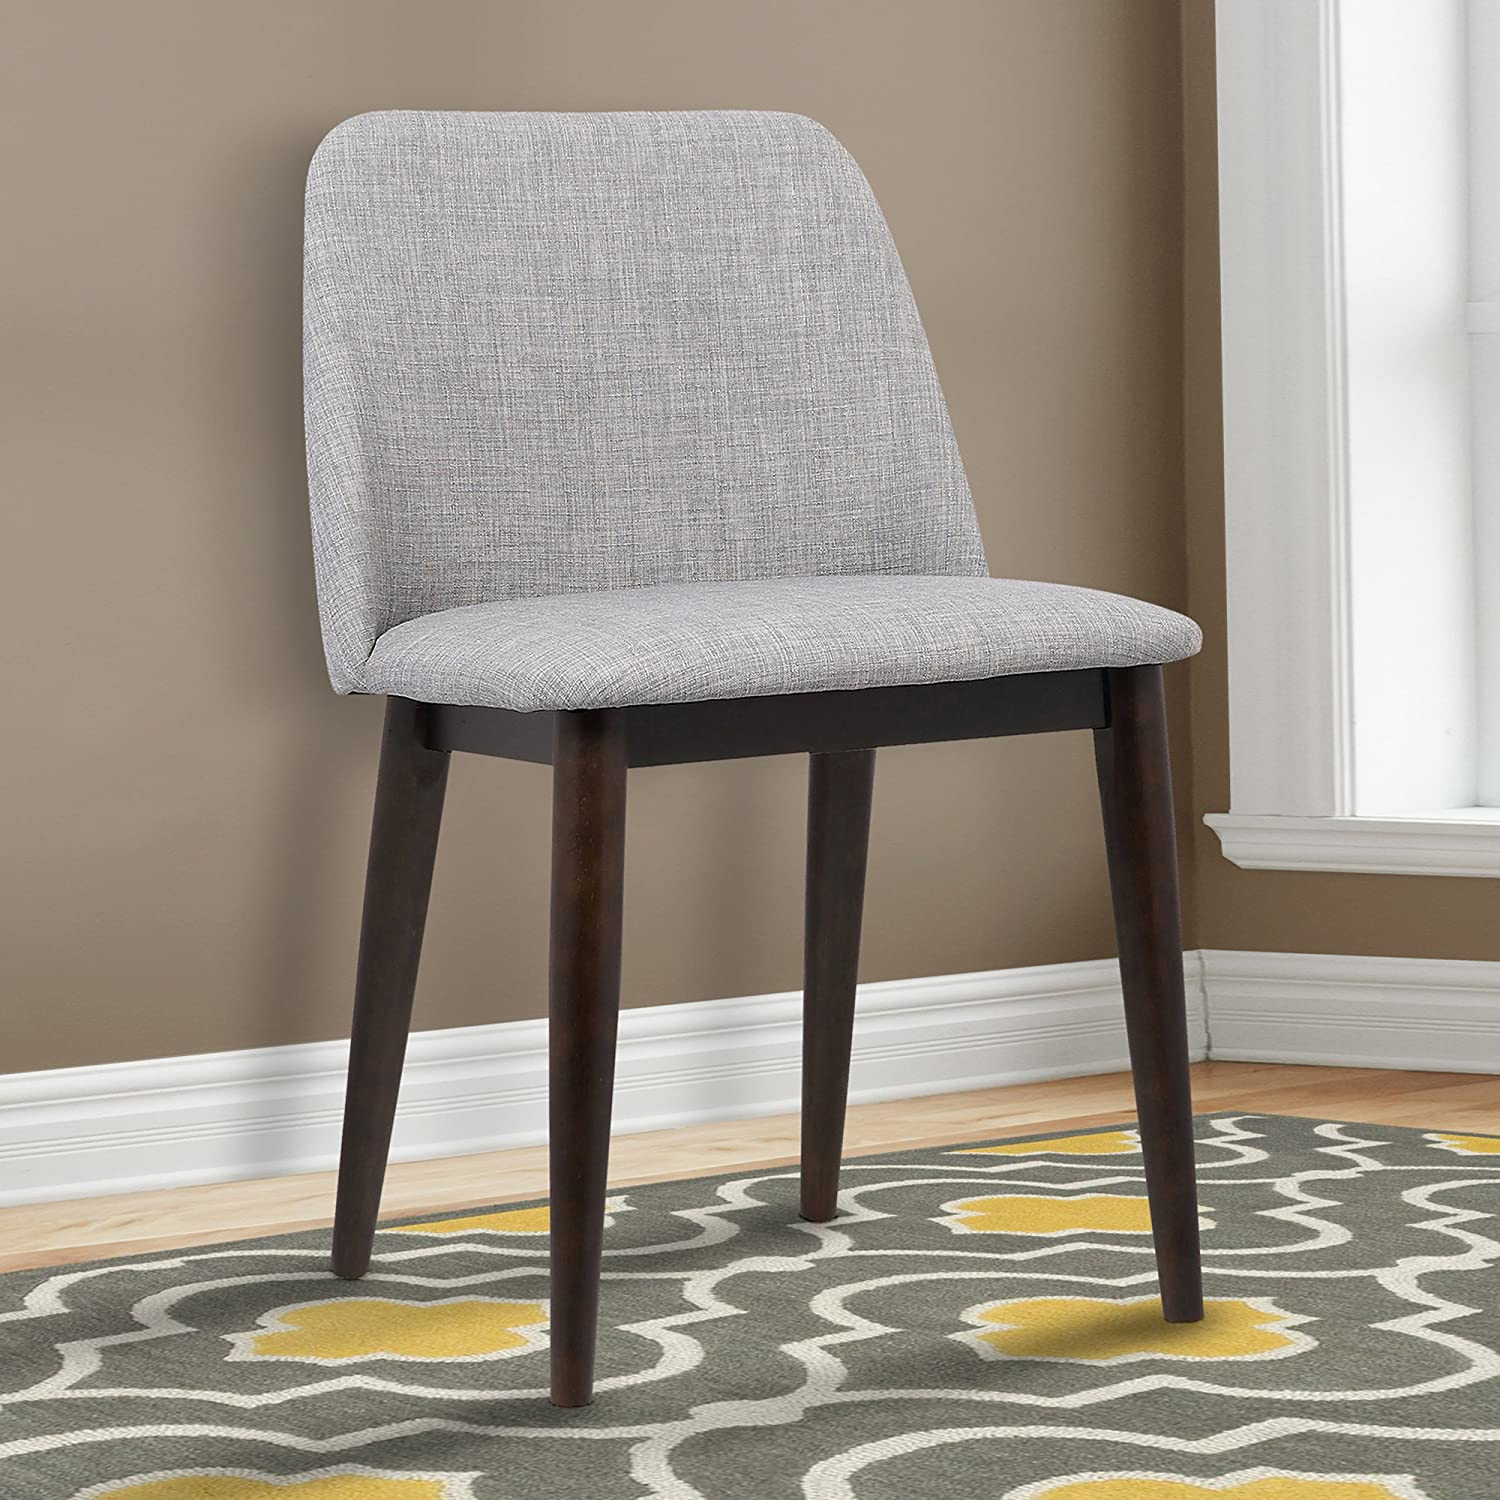 Armen Living LCHOCHGRAY Horizon Dining Chair Set of 2 in Light Grey Fabric and Brown Wood Finish